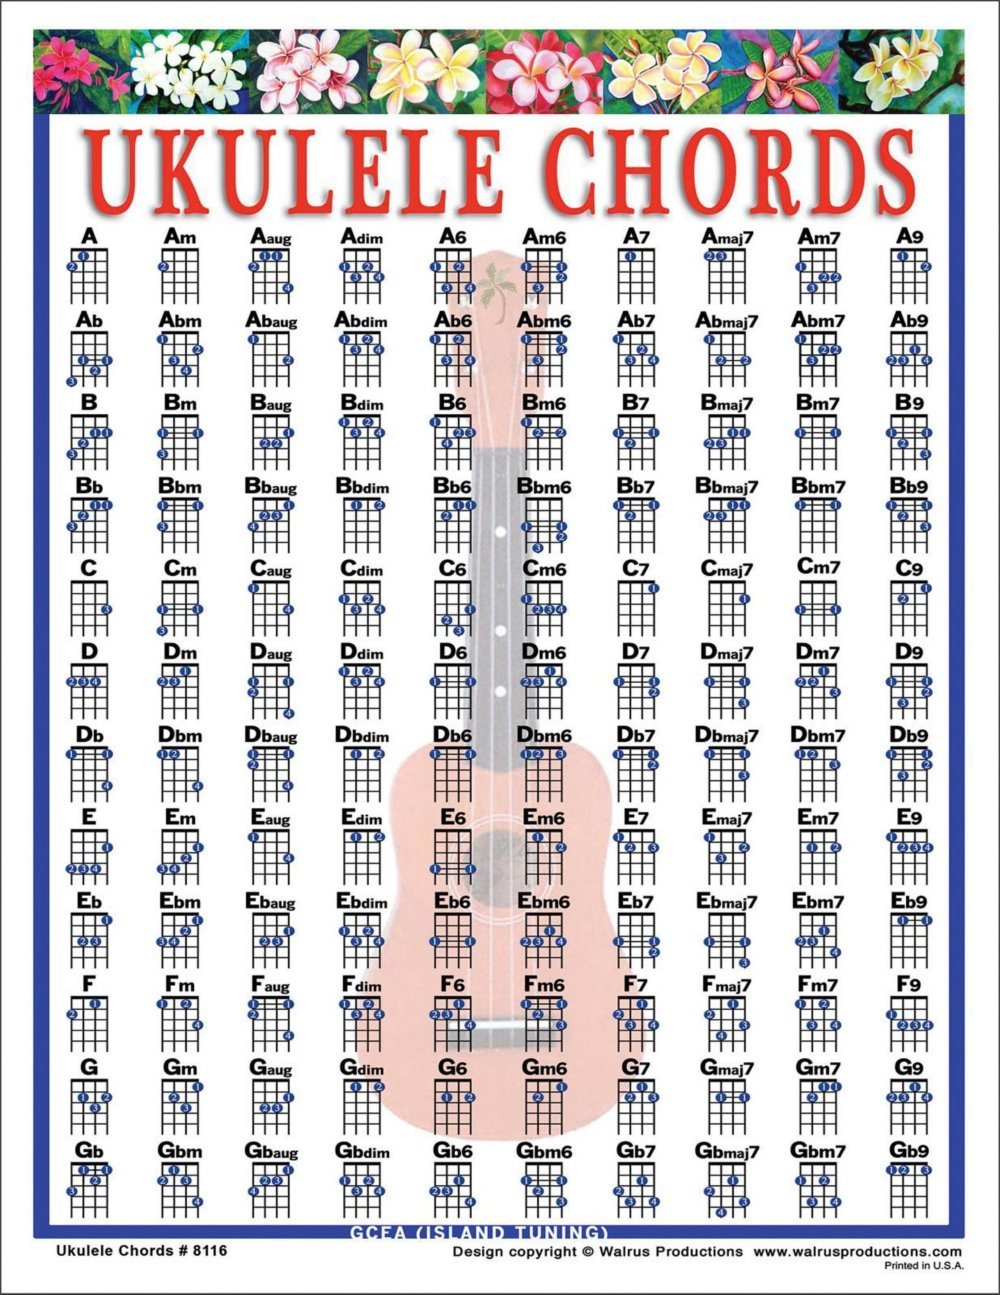 Amazon walrus productions ukulele chord mini chart walrus amazon walrus productions ukulele chord mini chart walrus productions musical instruments hexwebz Images